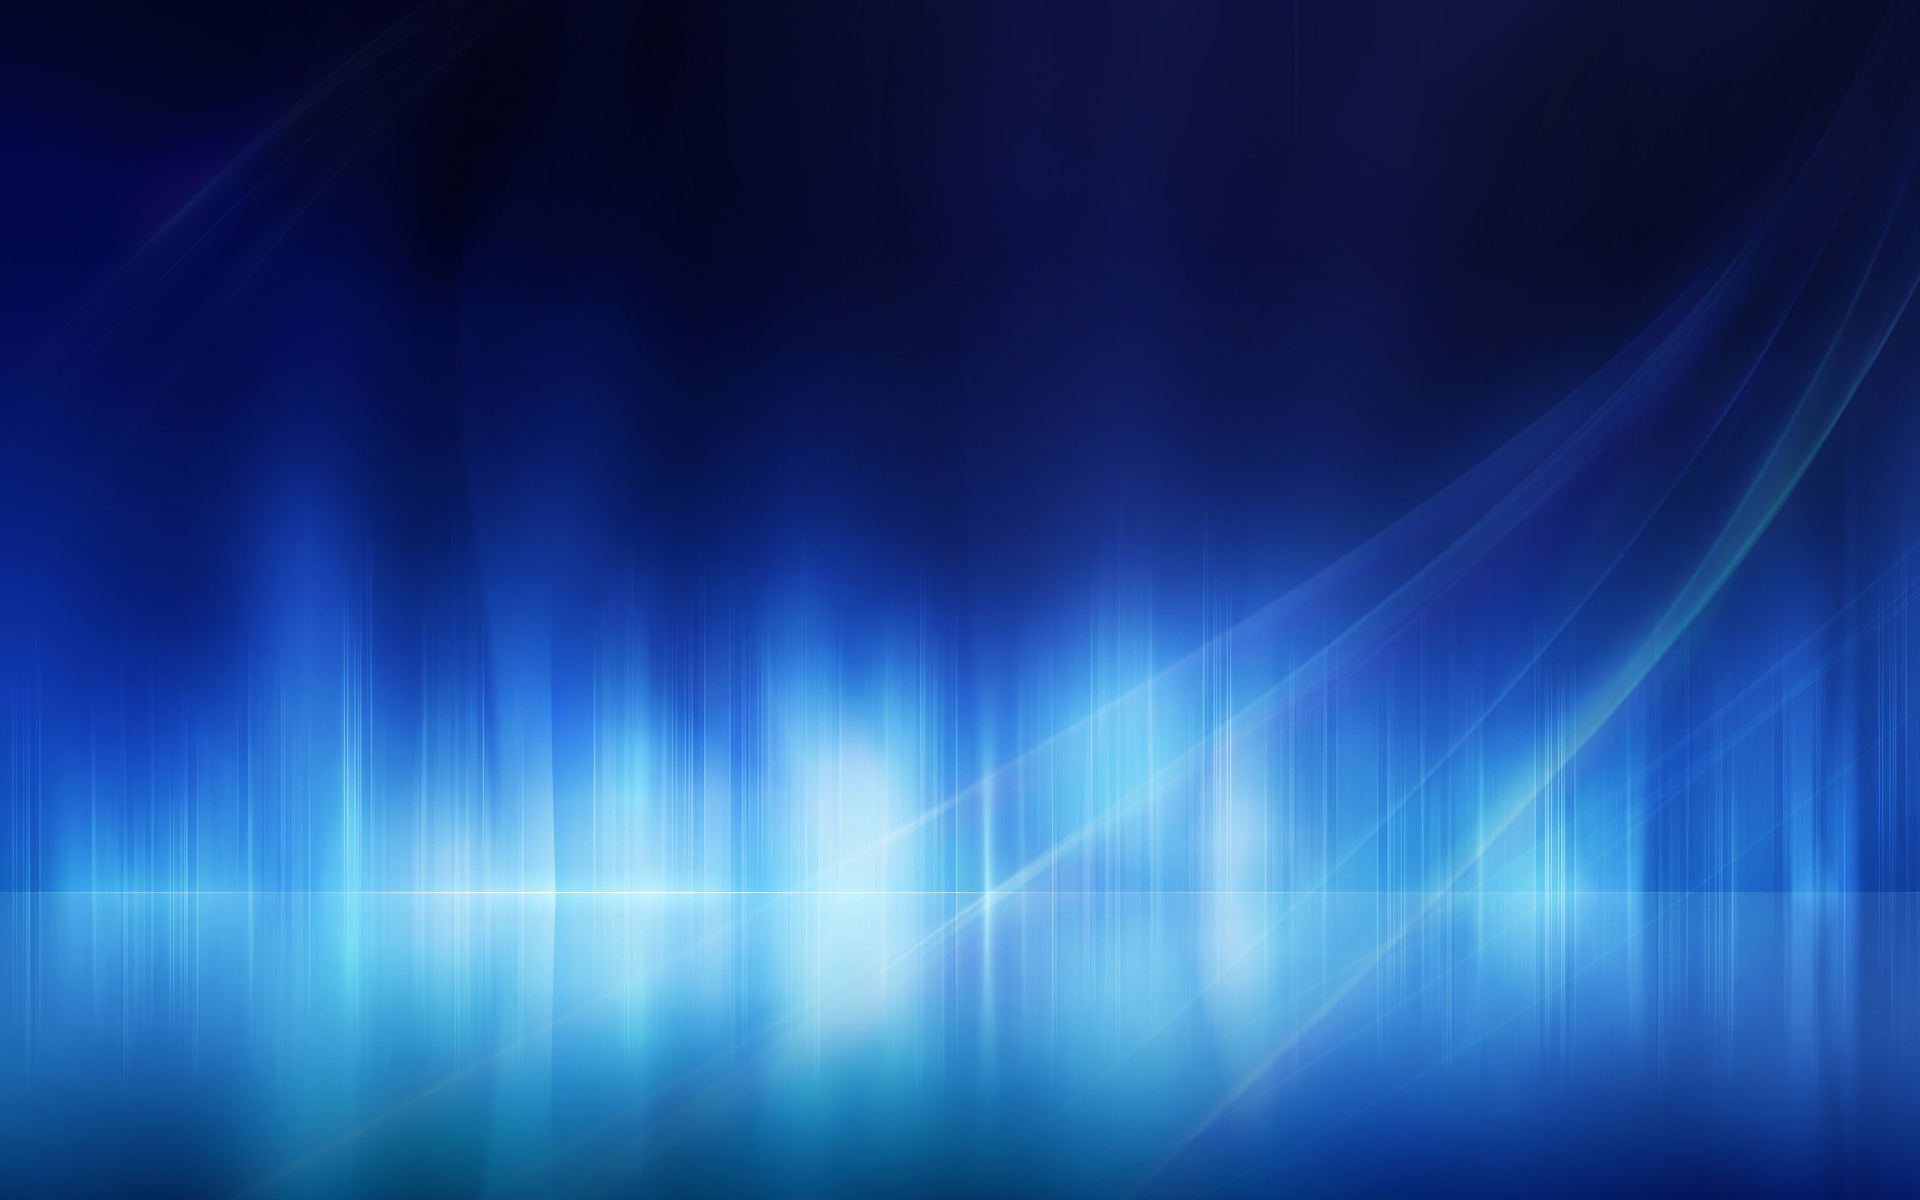 blue wallpaper 8 1920x1200